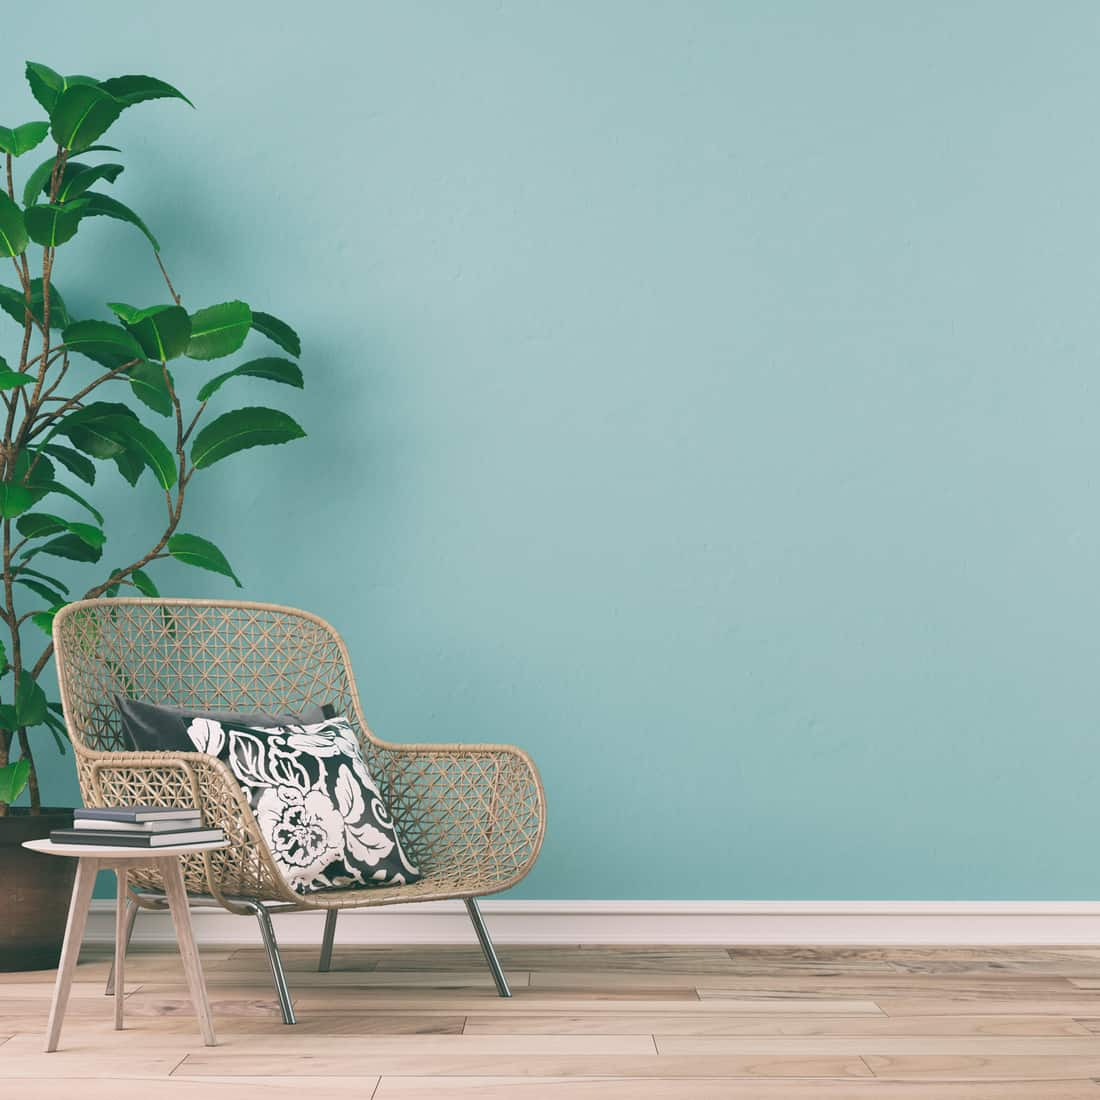 Empty retro interior on mint wall background on hardwood floor with copy space and decoration. Slight vintage effect added.